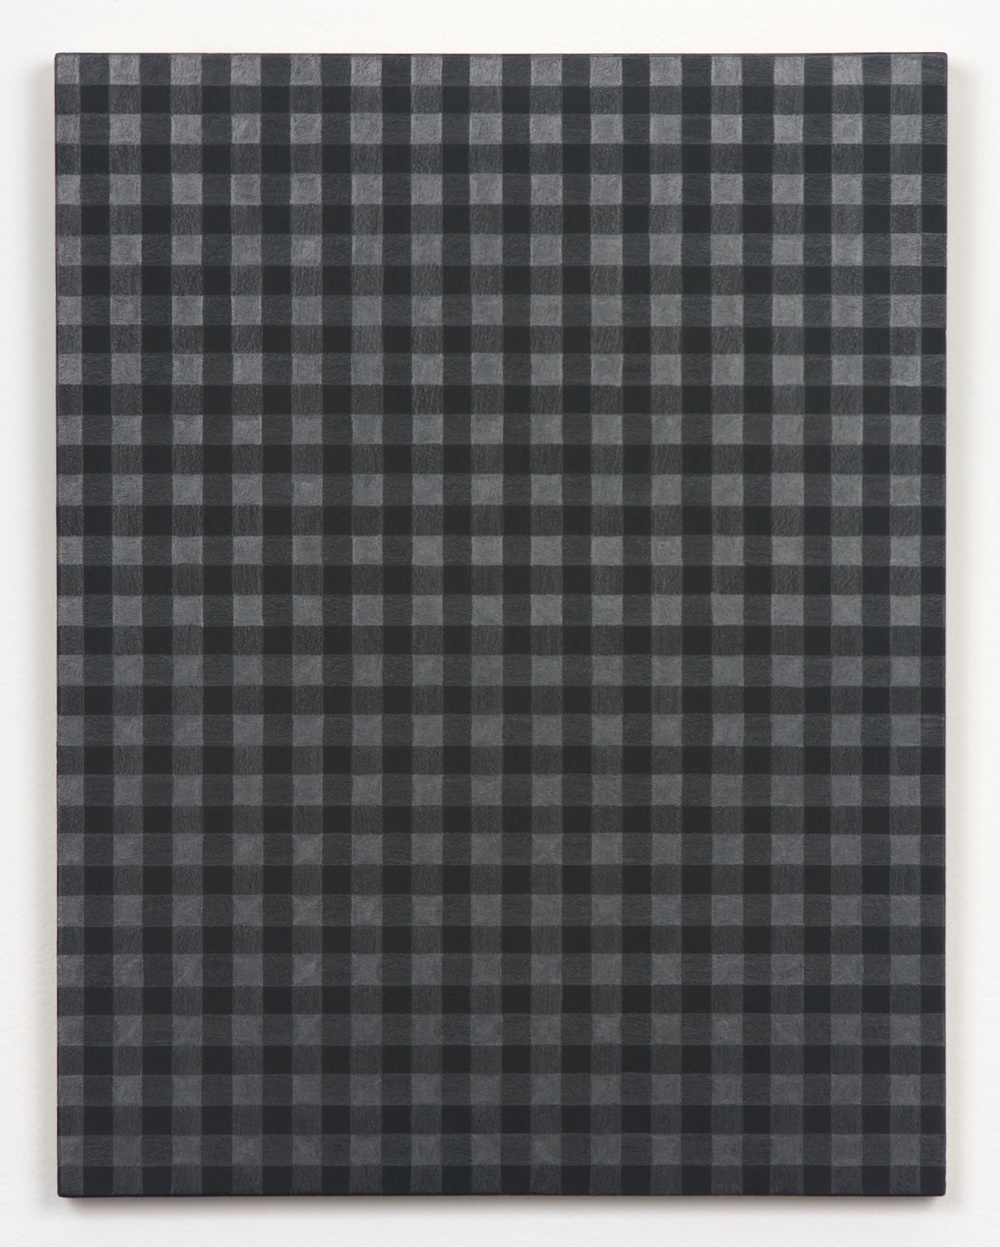 Michelle Grabner  Untitled  2010 Graphite and gesso on panel 15h x 12w in MGrab179